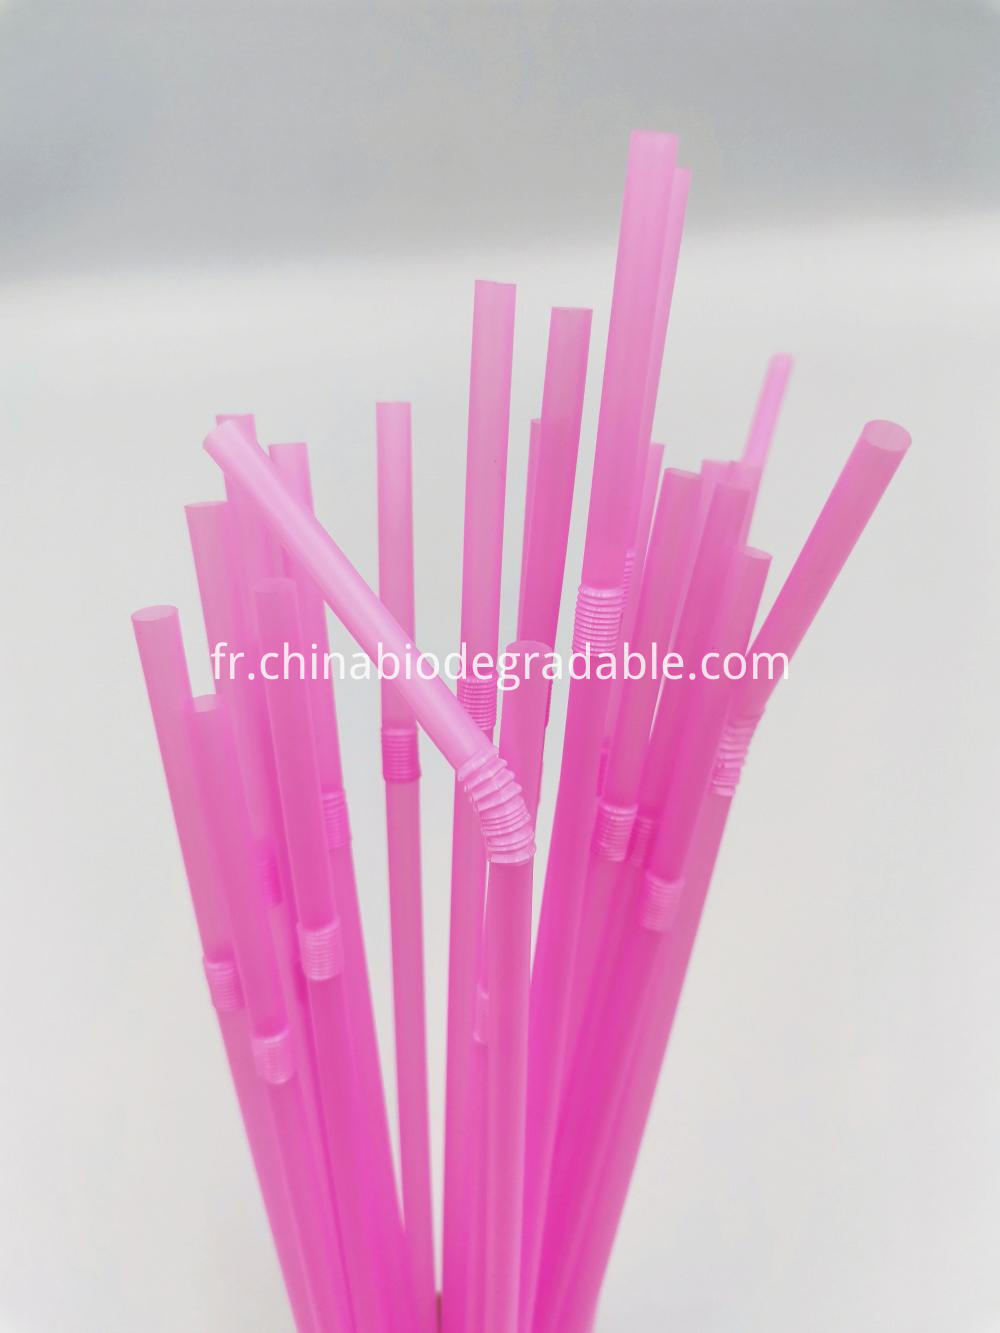 Compostable Plastic Flexible Drinking Straws